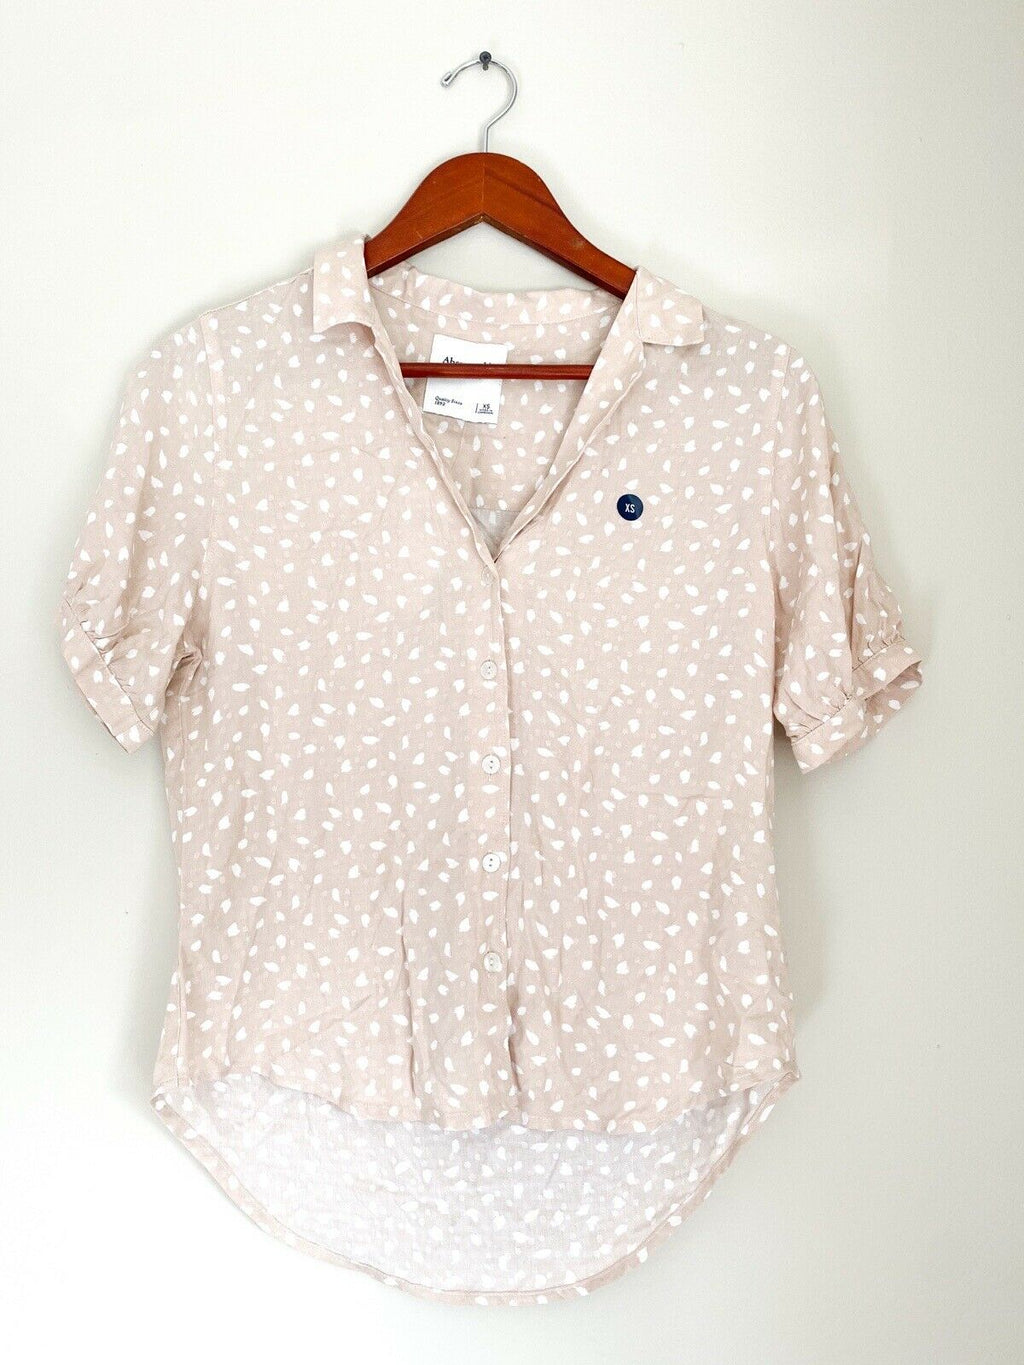 Abercrombie & Fitch Women's XS Cream Beige Top Short Sleeve Collared Blouse NWT